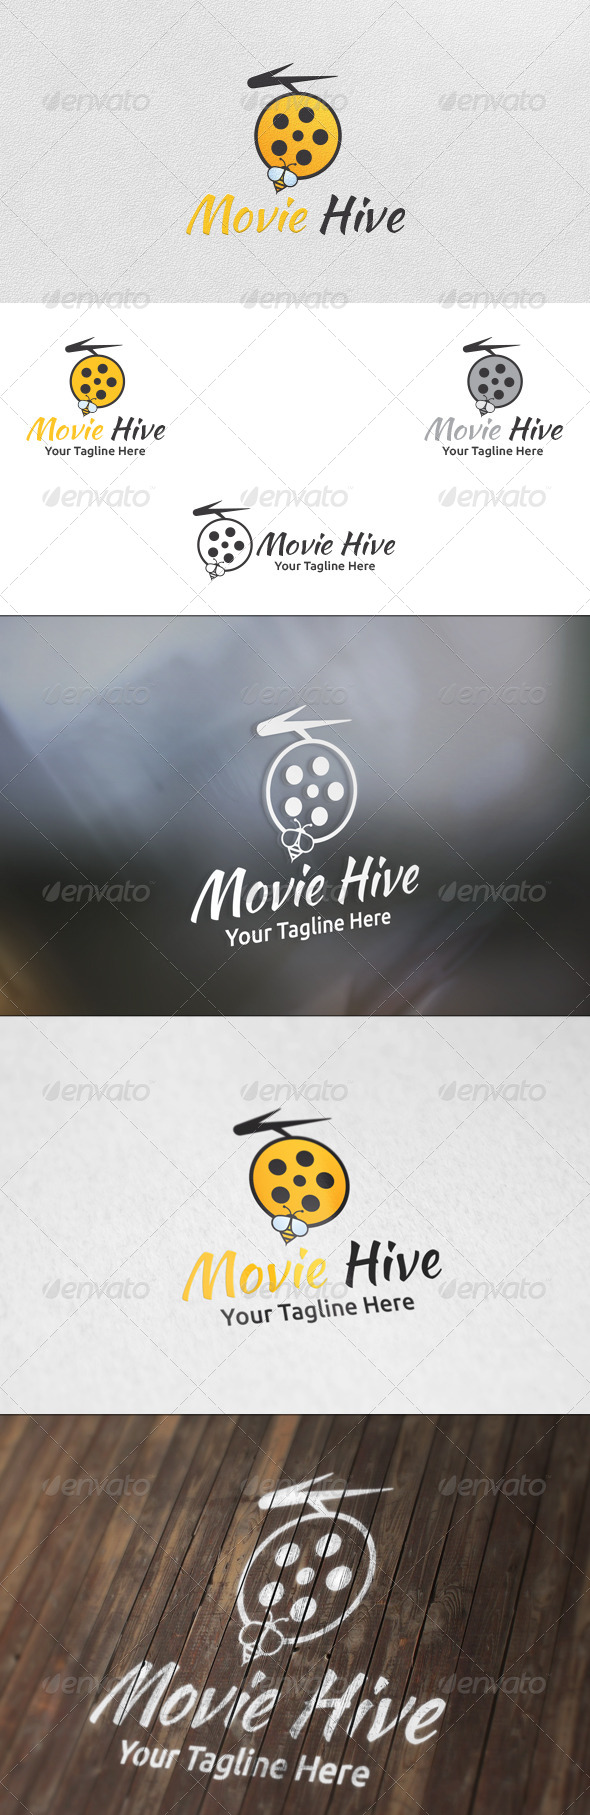 GraphicRiver Movie Hive Logo Template 5913183